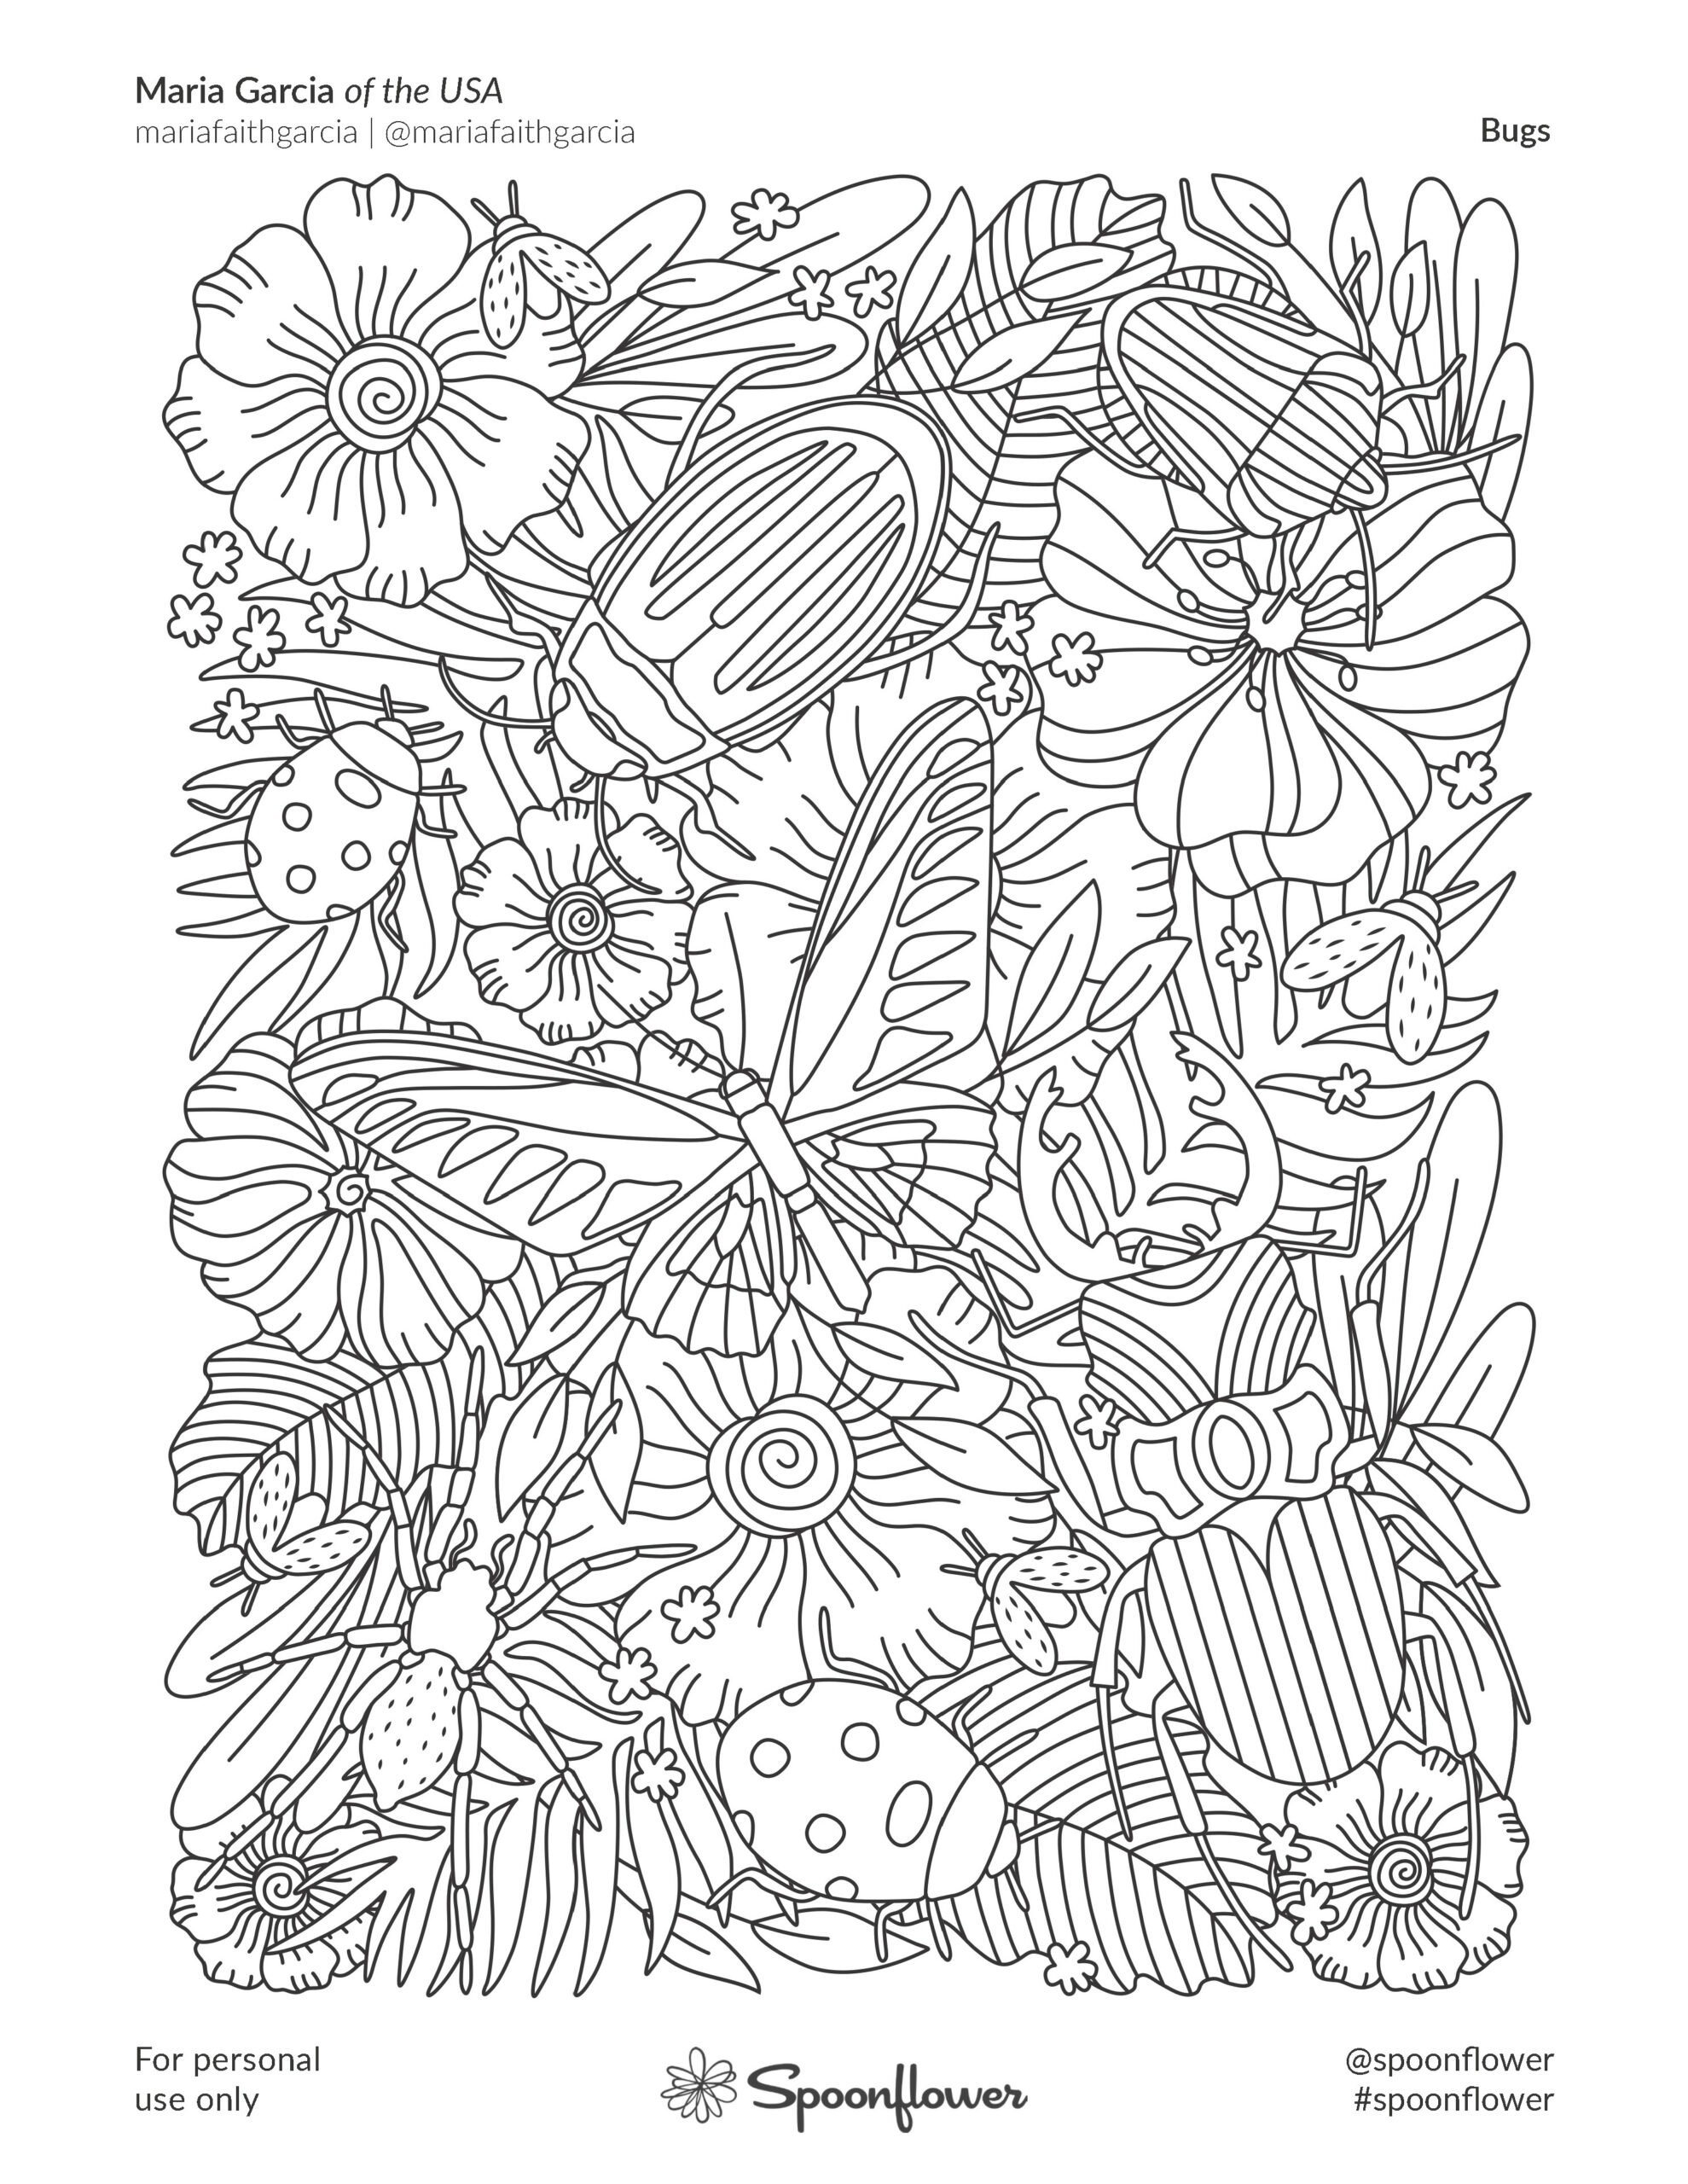 Coloring Book Page - Bugs by Maria Garcia